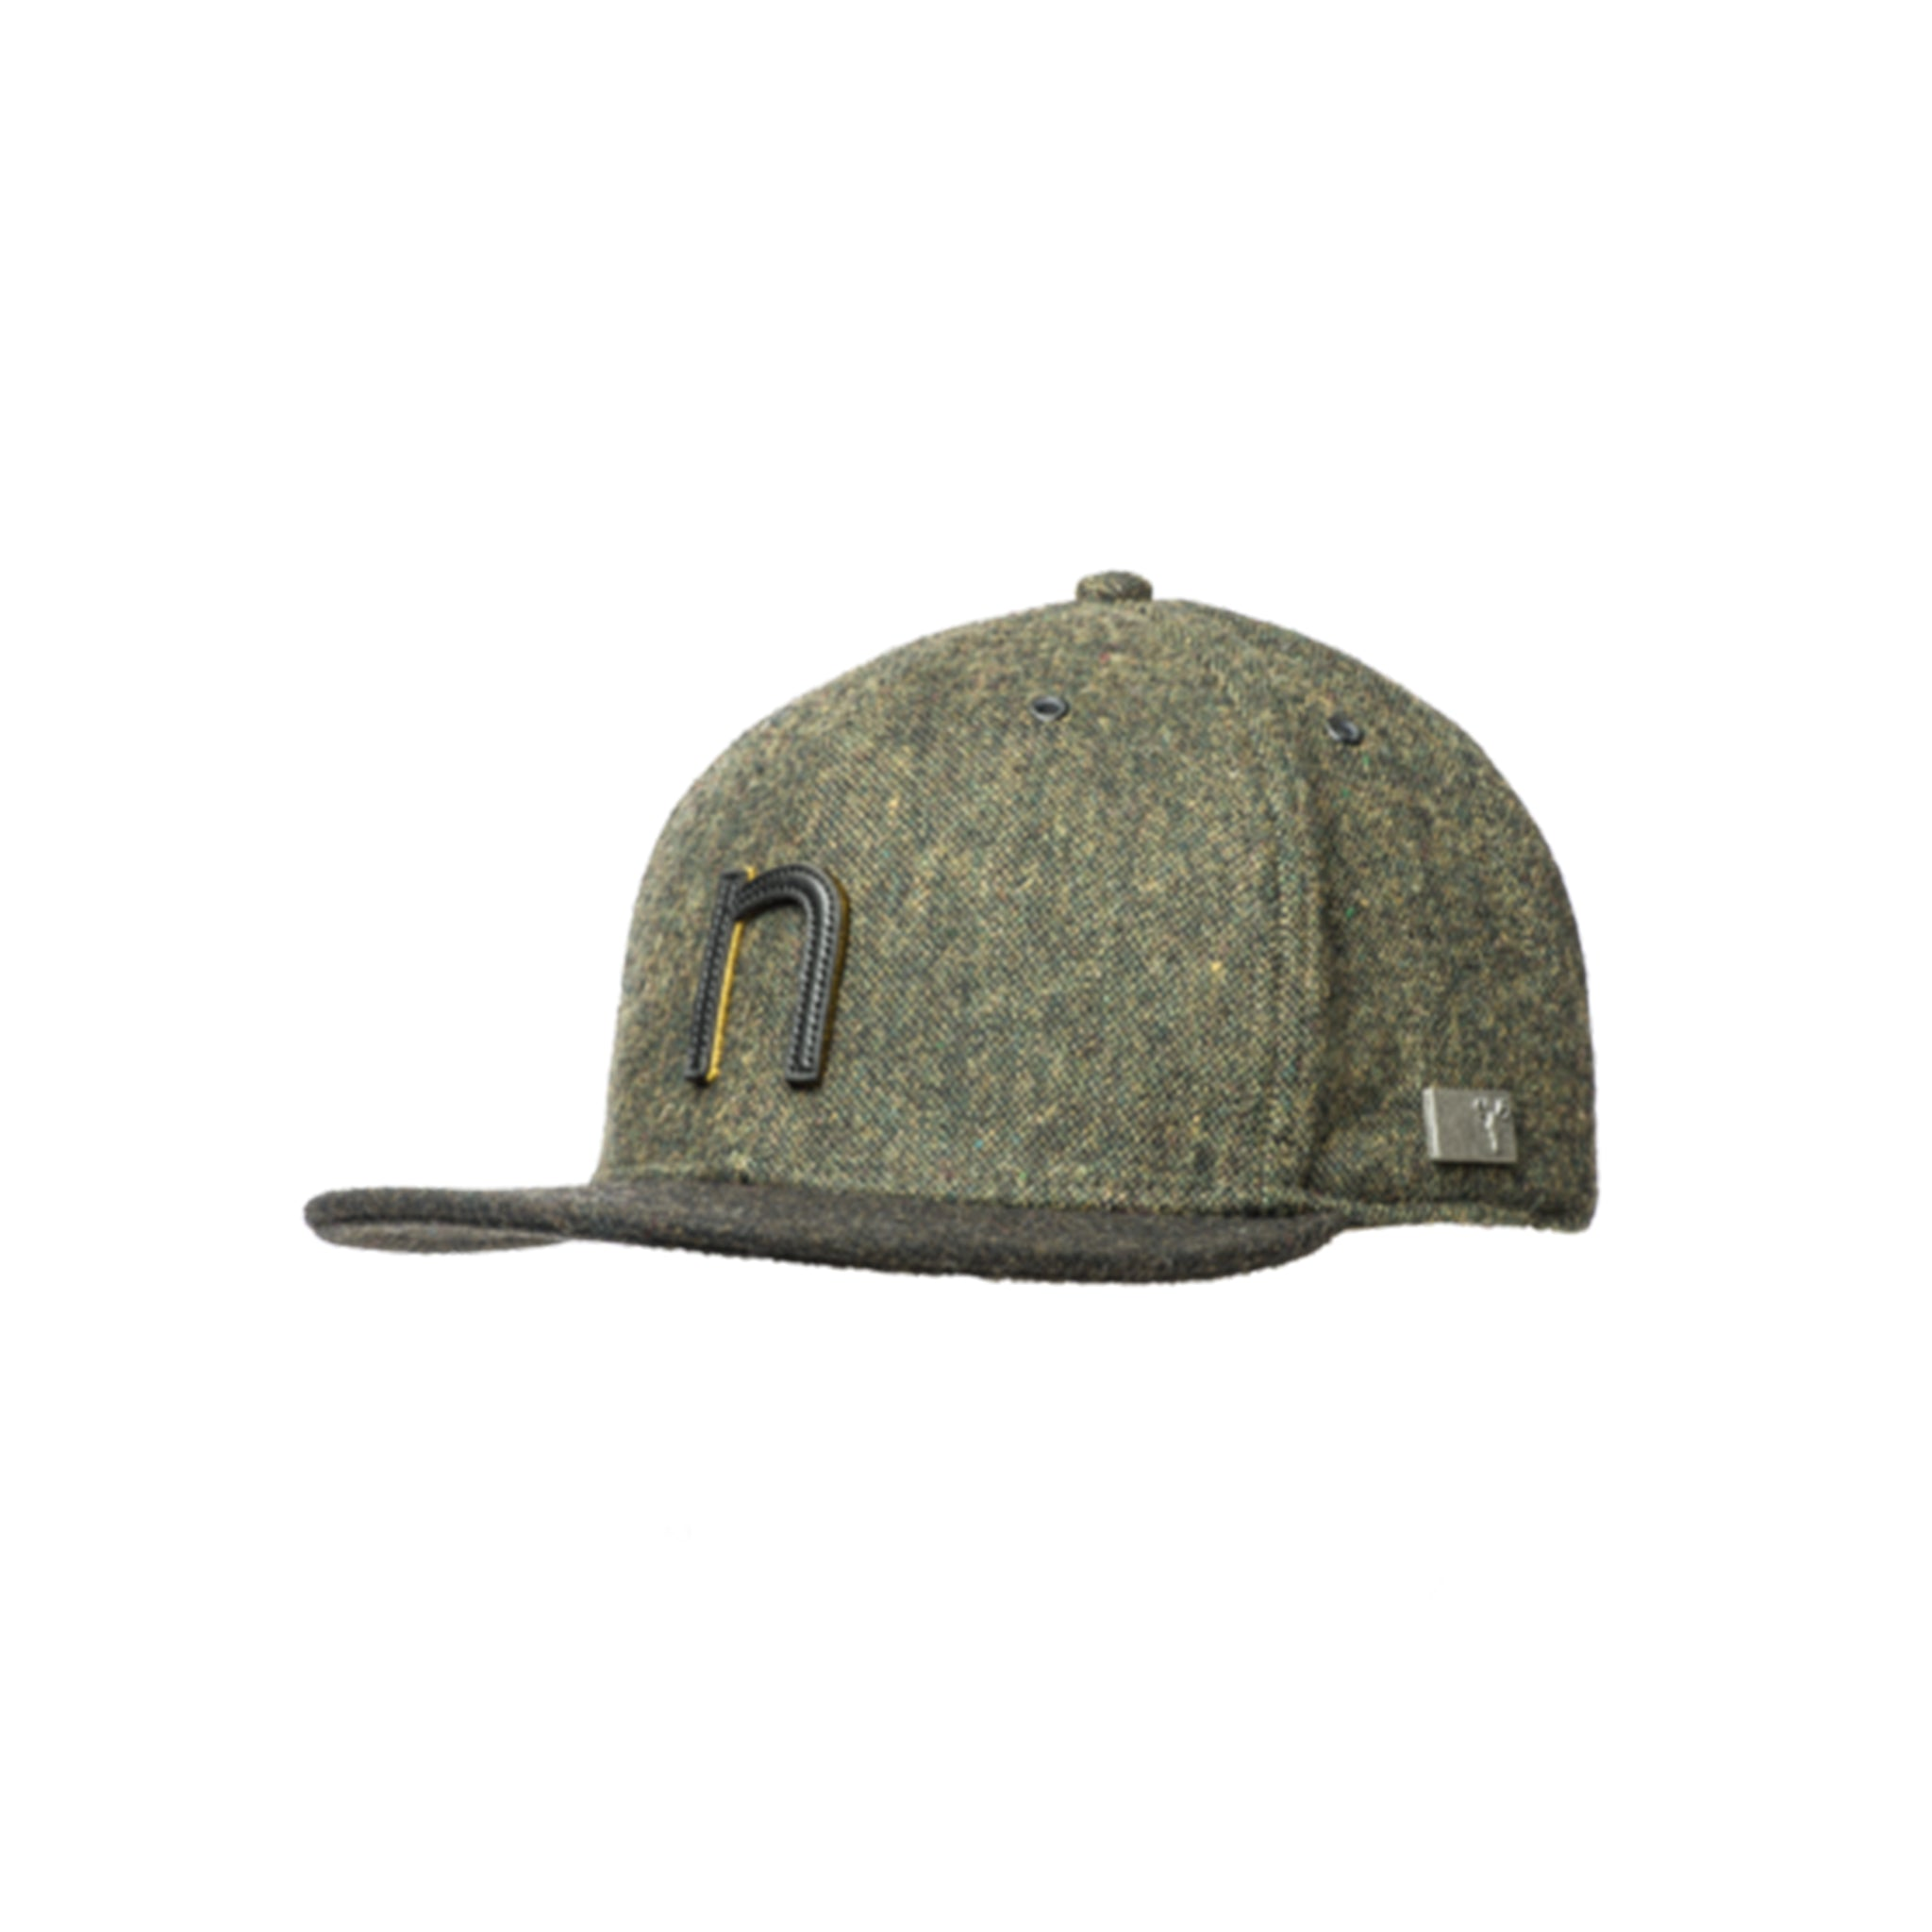 Men s Headwear - Alpine Start Outfitters bc35a5ea0dfc